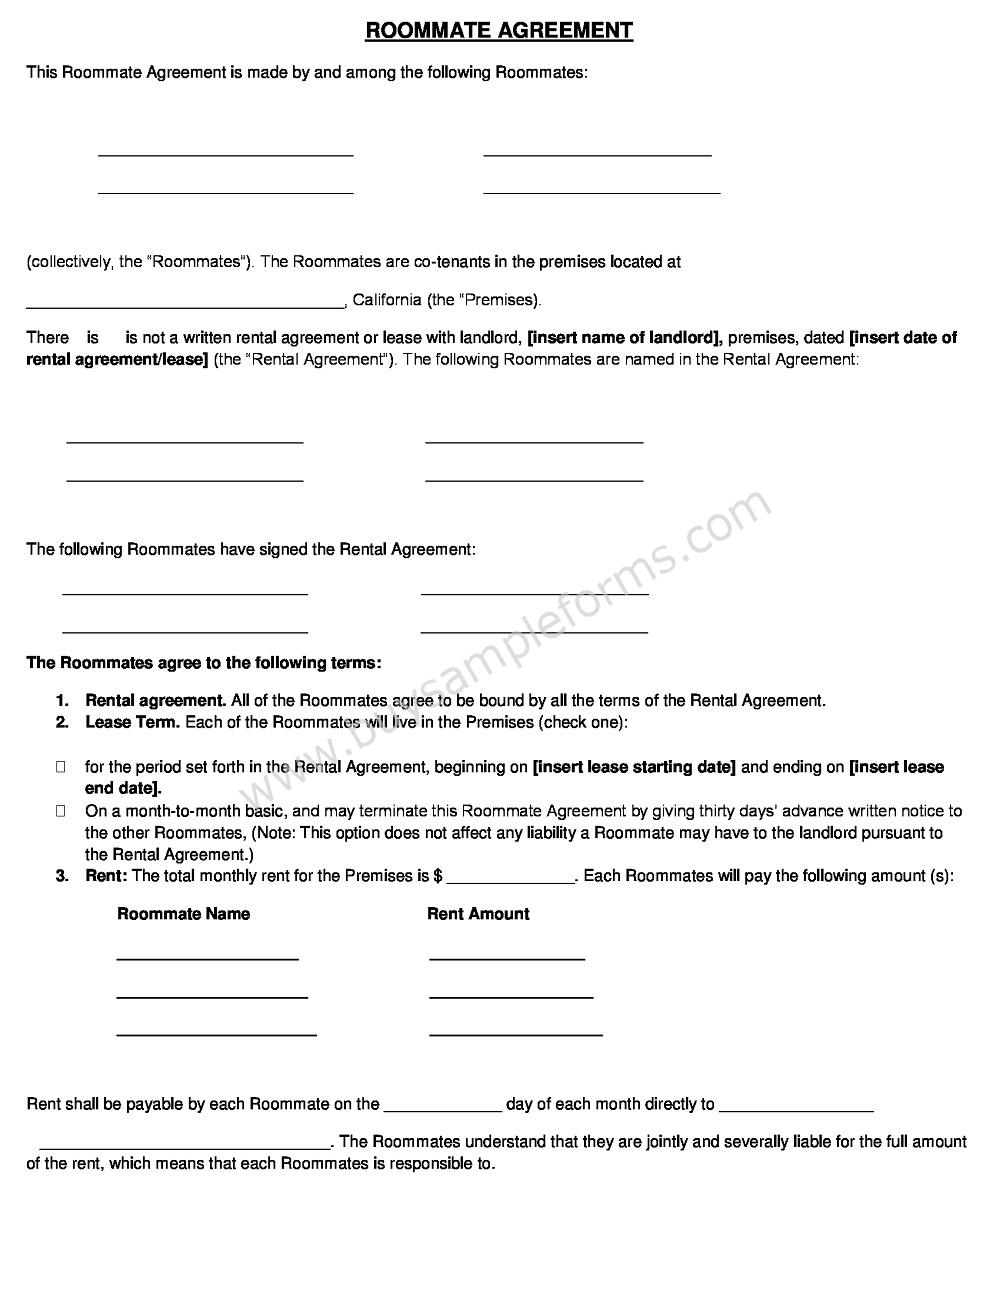 Sample Roommate Rental Agreement Form Template Word Doc